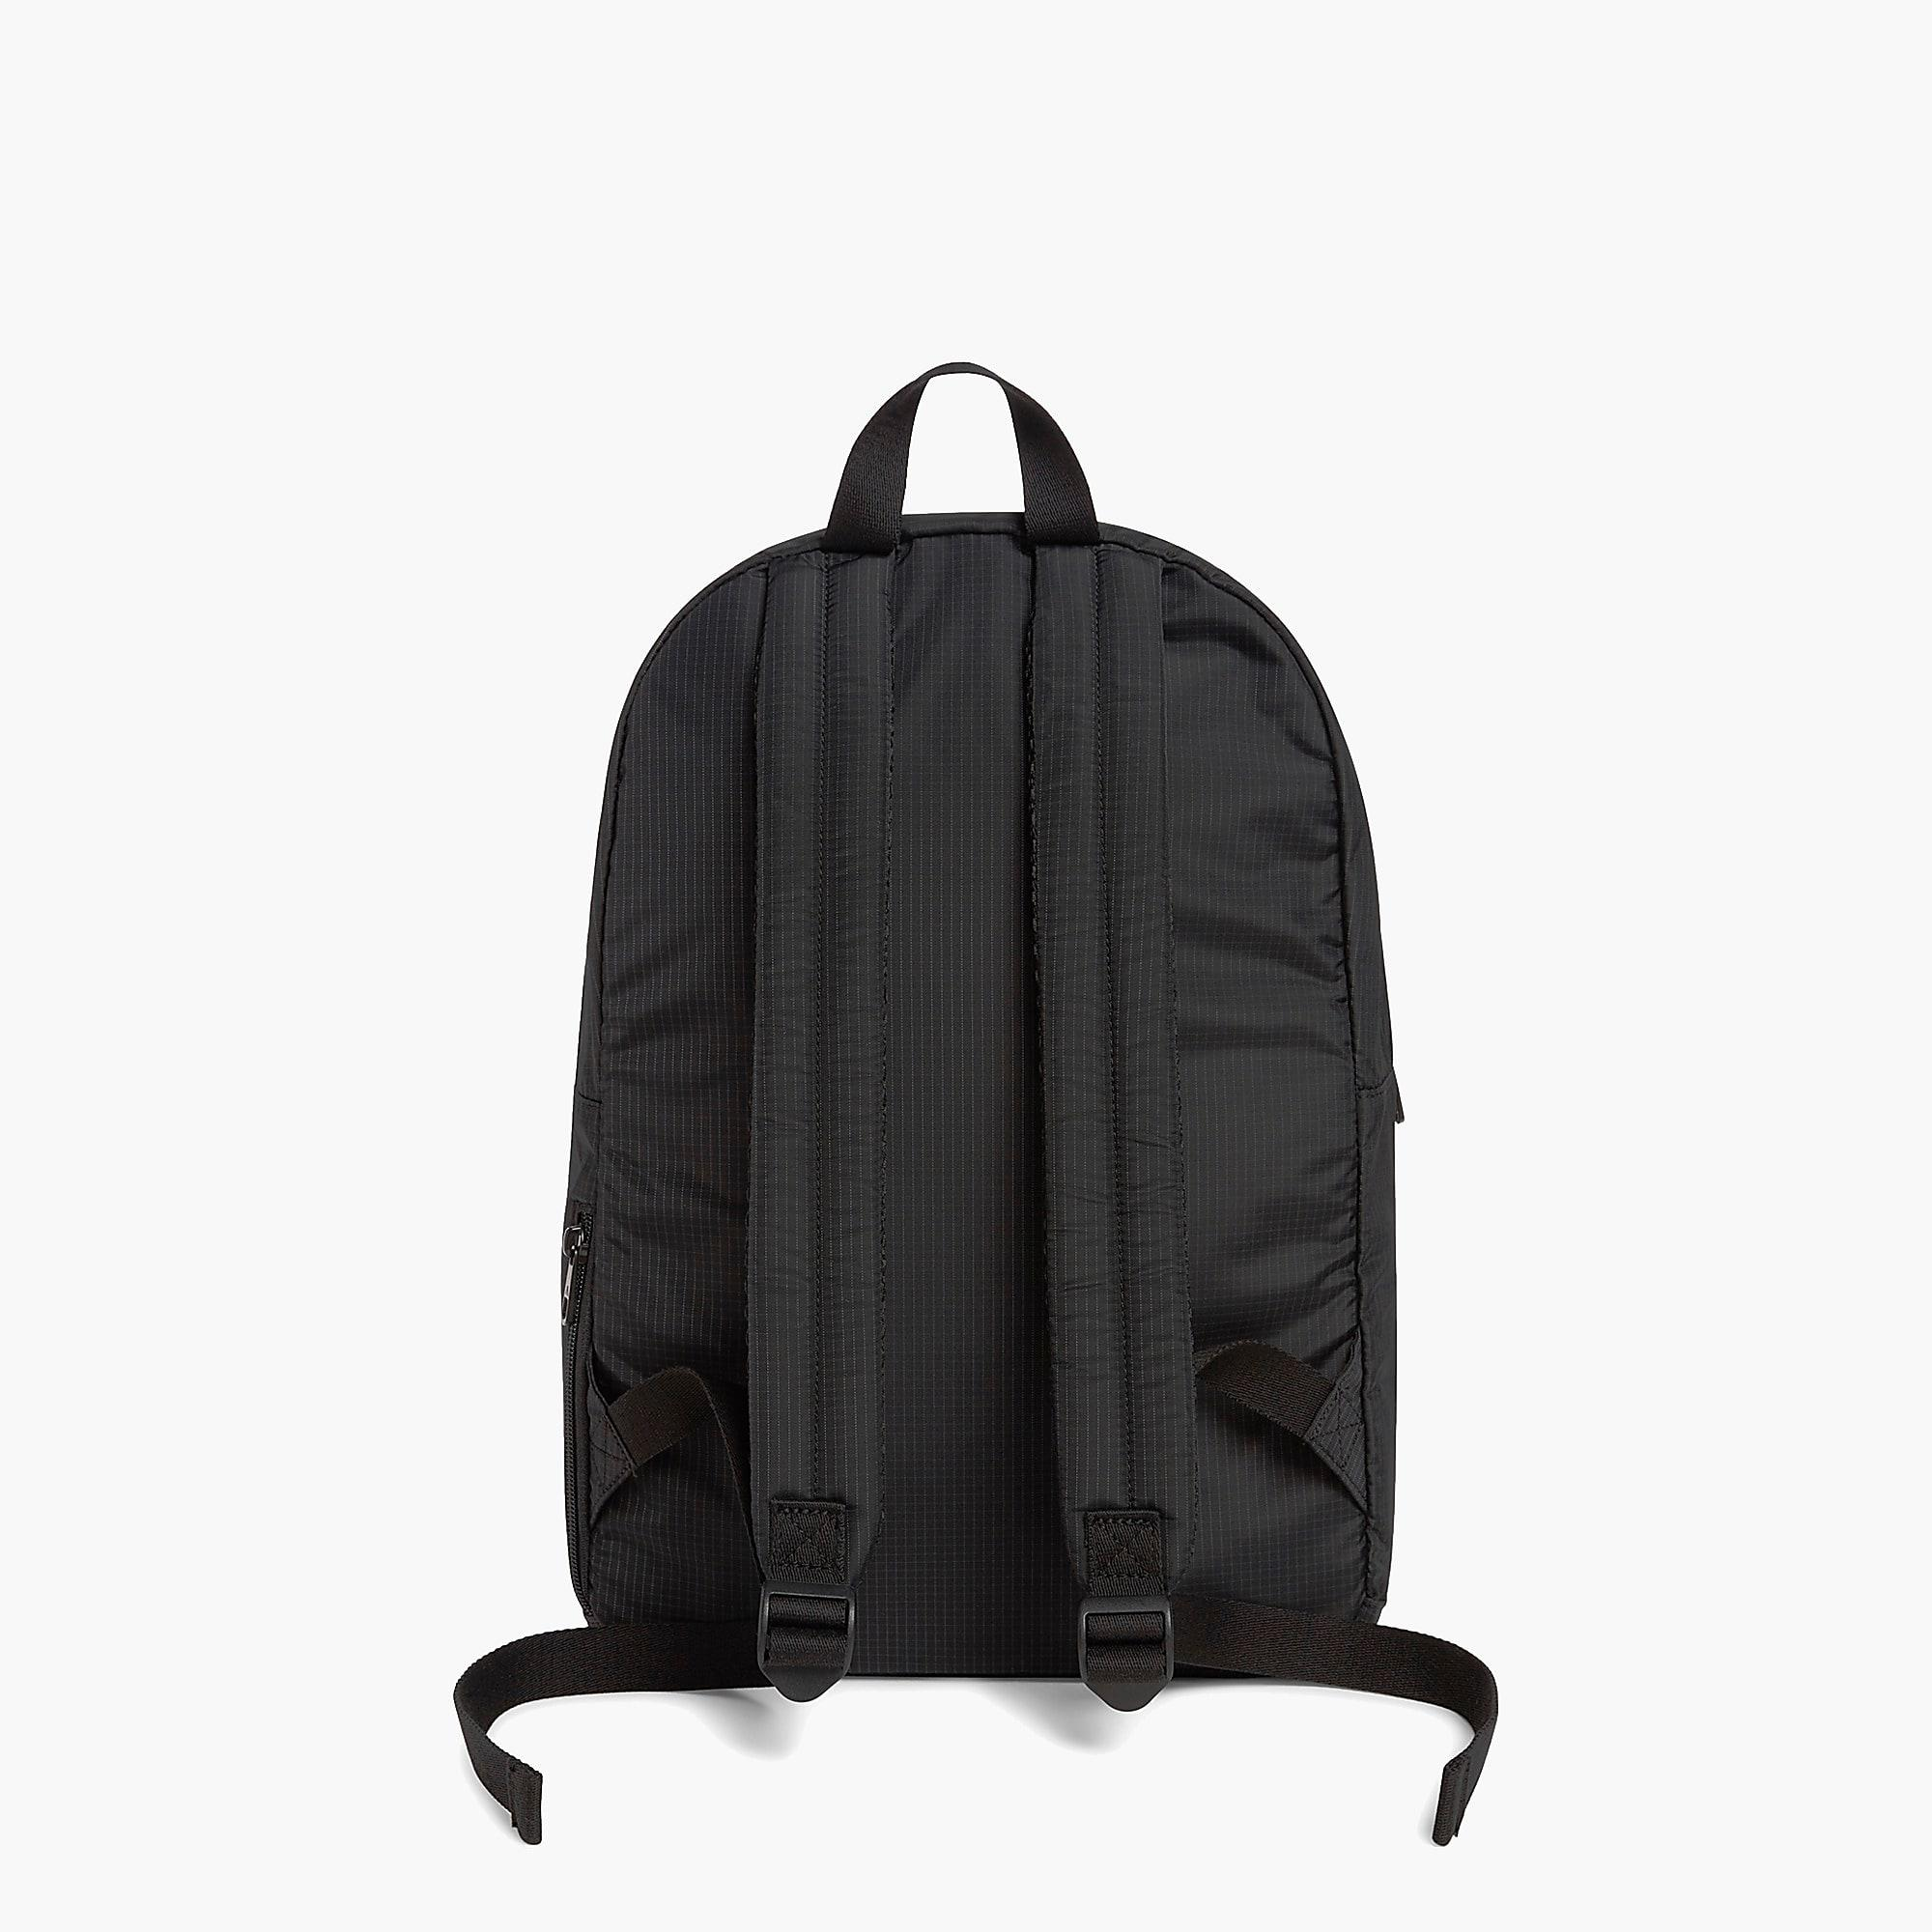 5723903e4c82 Lyst - J.Crew State Bags Marshall Packable Backpack in Black for Men